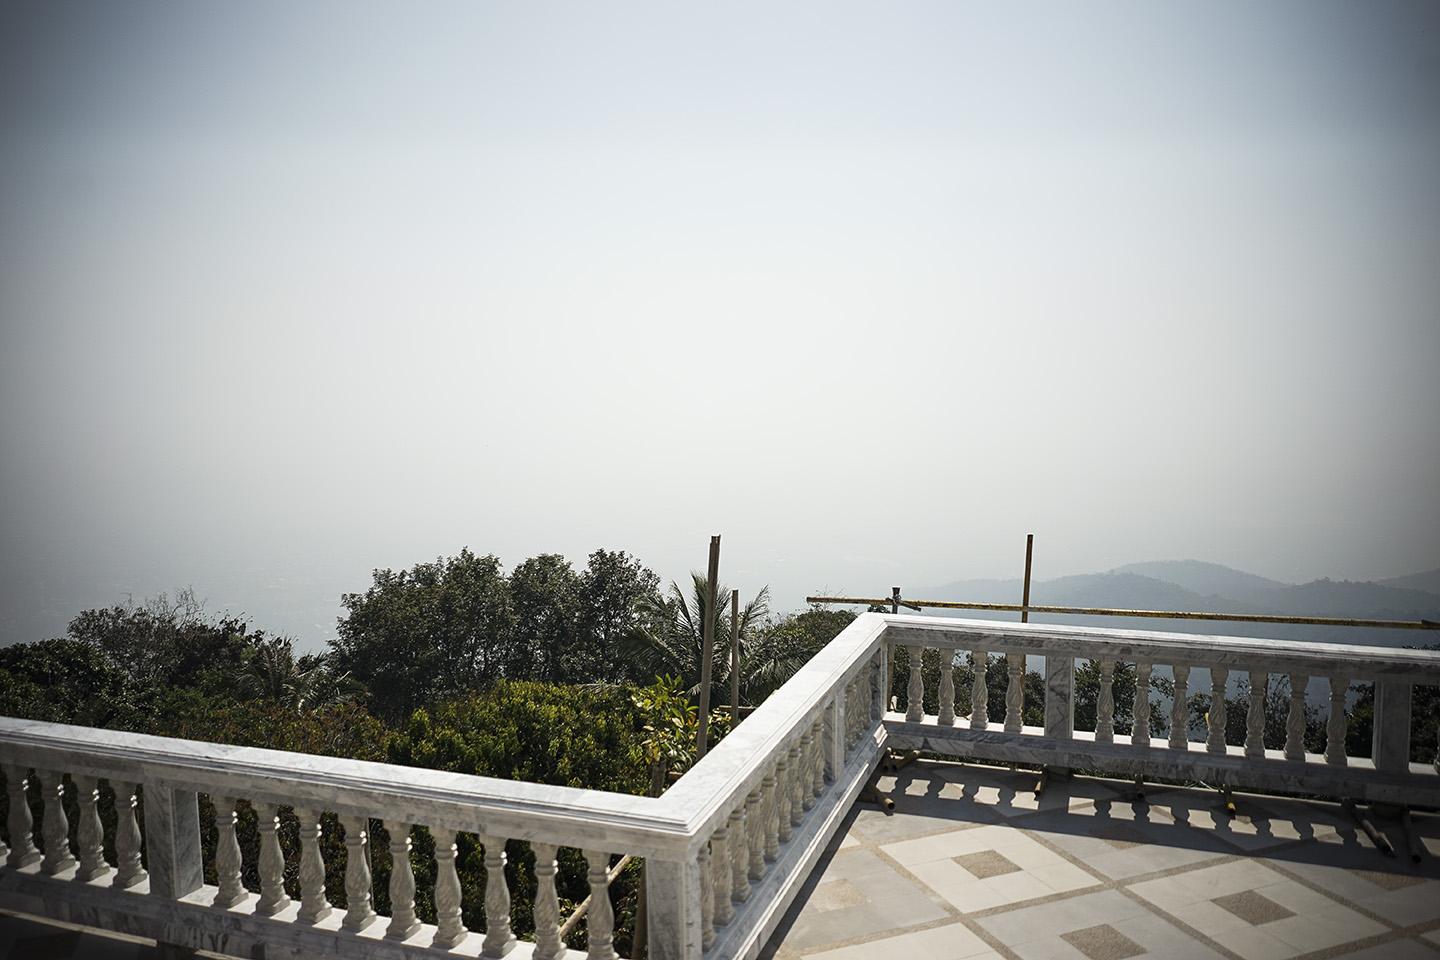 View, or lack-there-of, from Doi Suthep